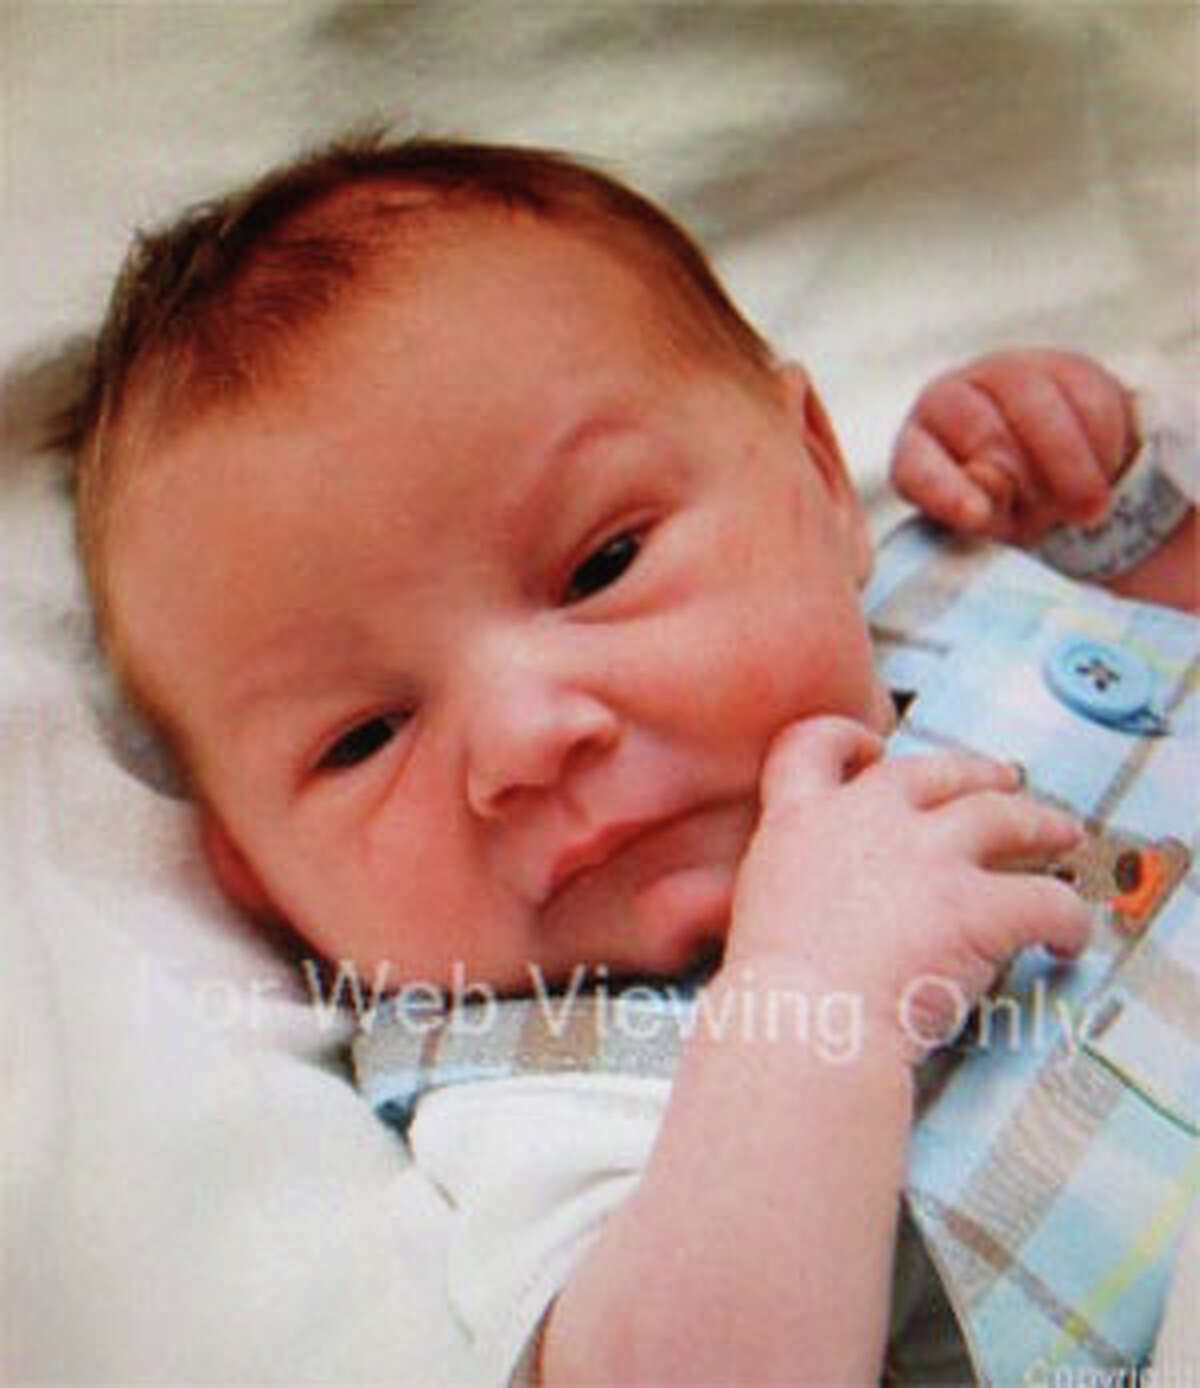 Montgomery County Sheriff's Office released this photo of 3-day-old Keegan Schuchardt.